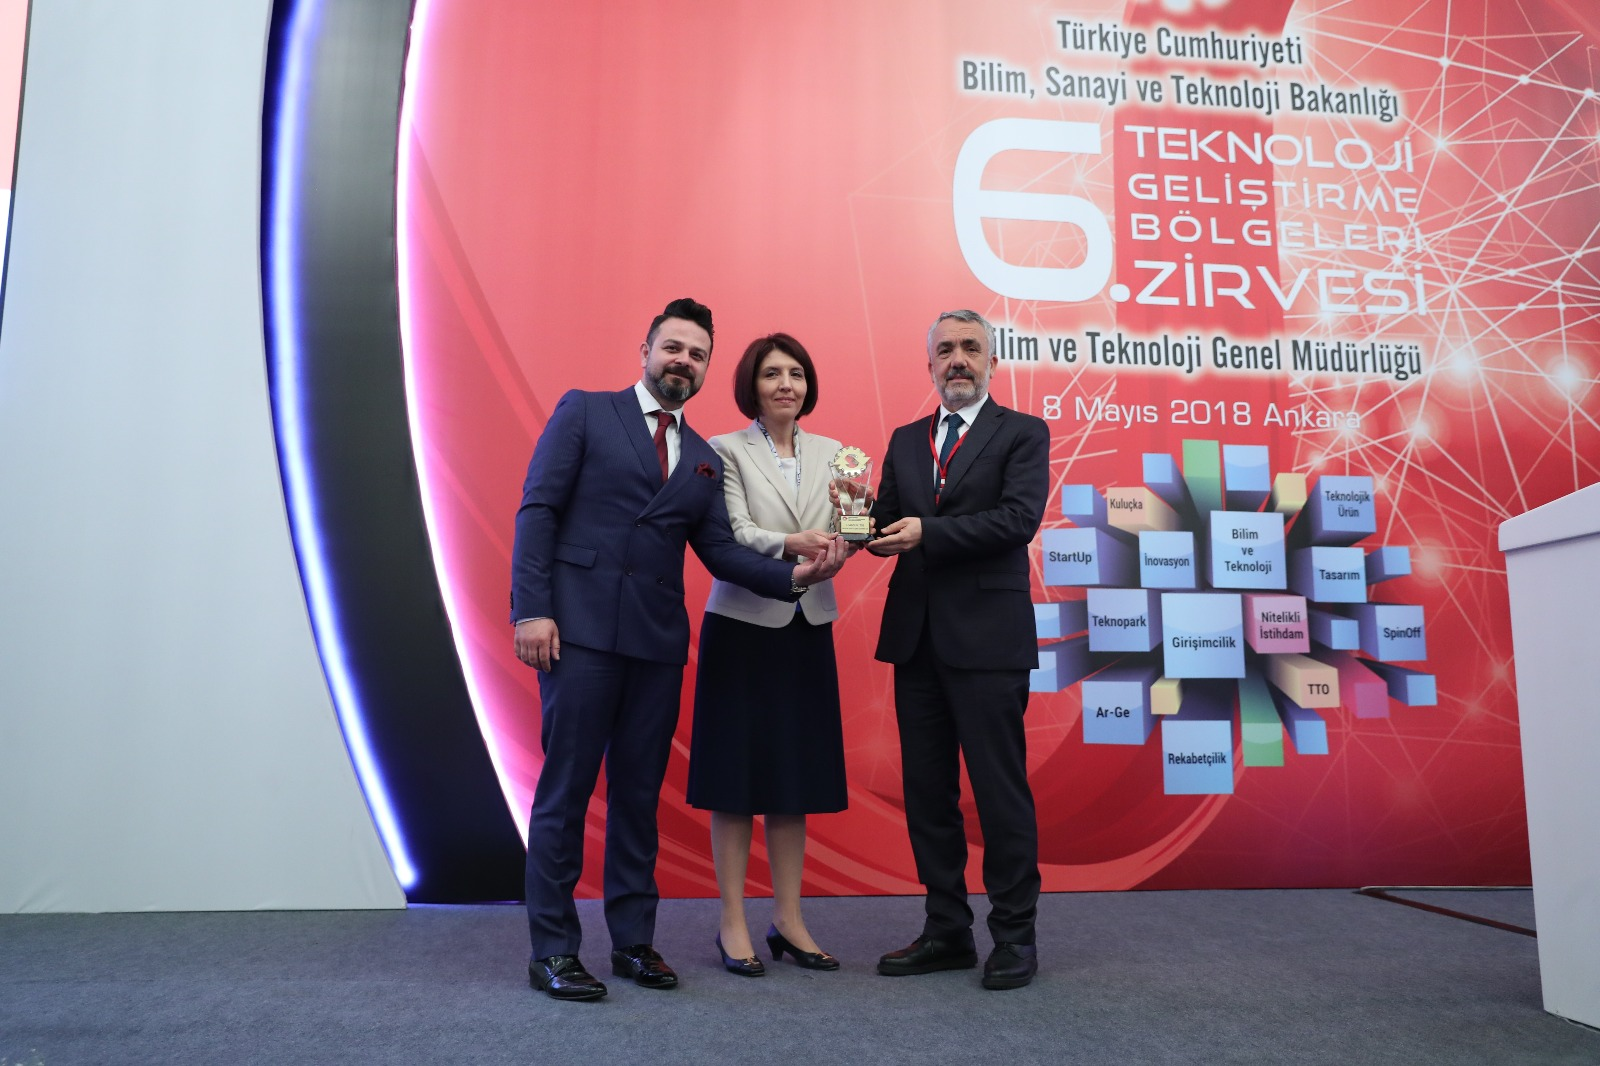 http://www.omu.edu.tr/sites/default/files/files/samsun_teknopark_receives_third_prize_/bf17b0f0-65cd-472a-9630-e169fa506728.jpg